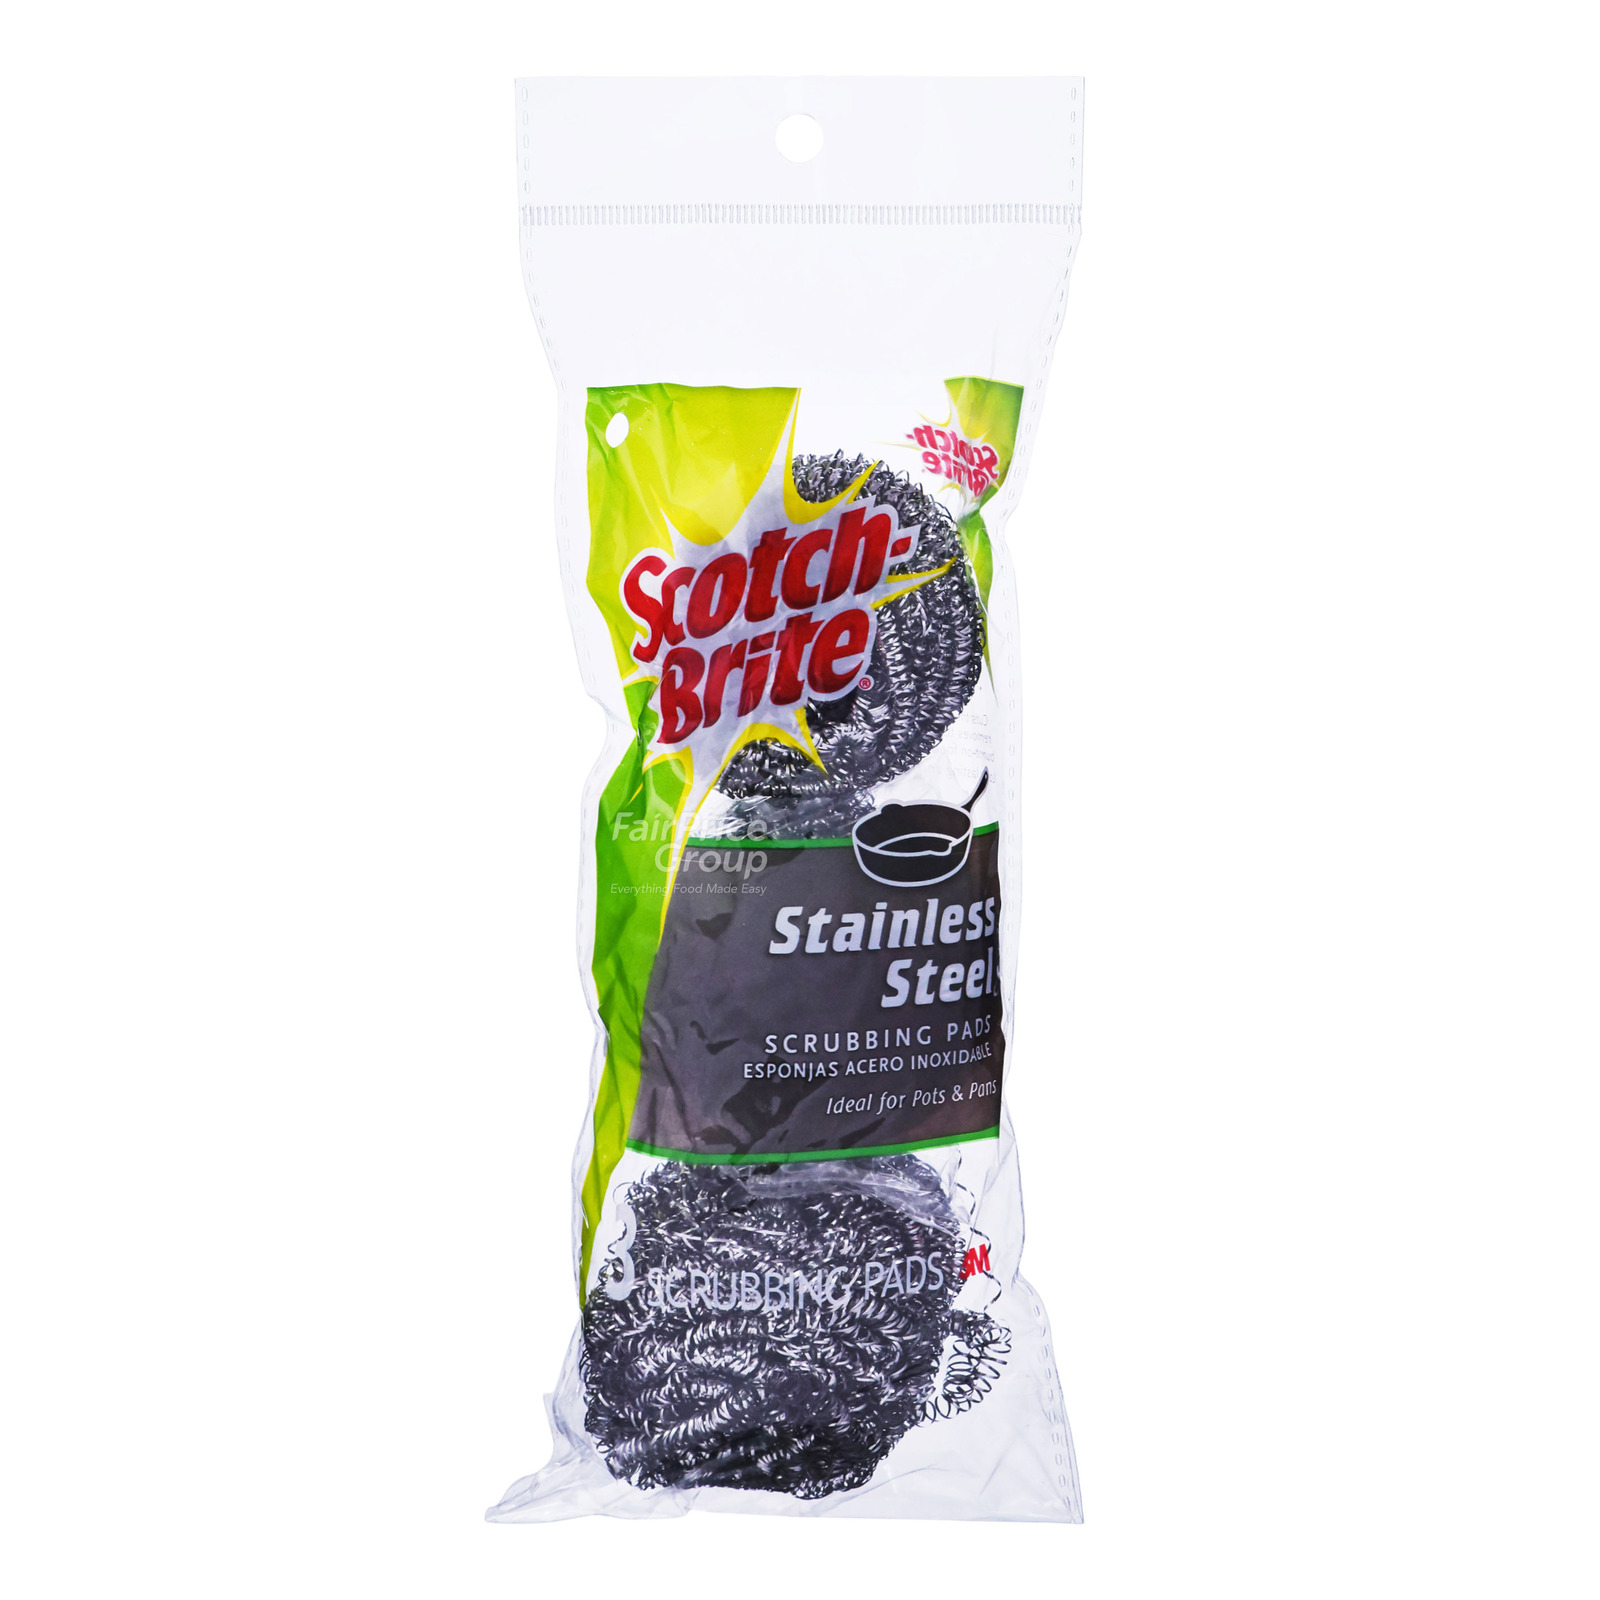 3M Scotch-Brite Scour Pads - Stainless Steel